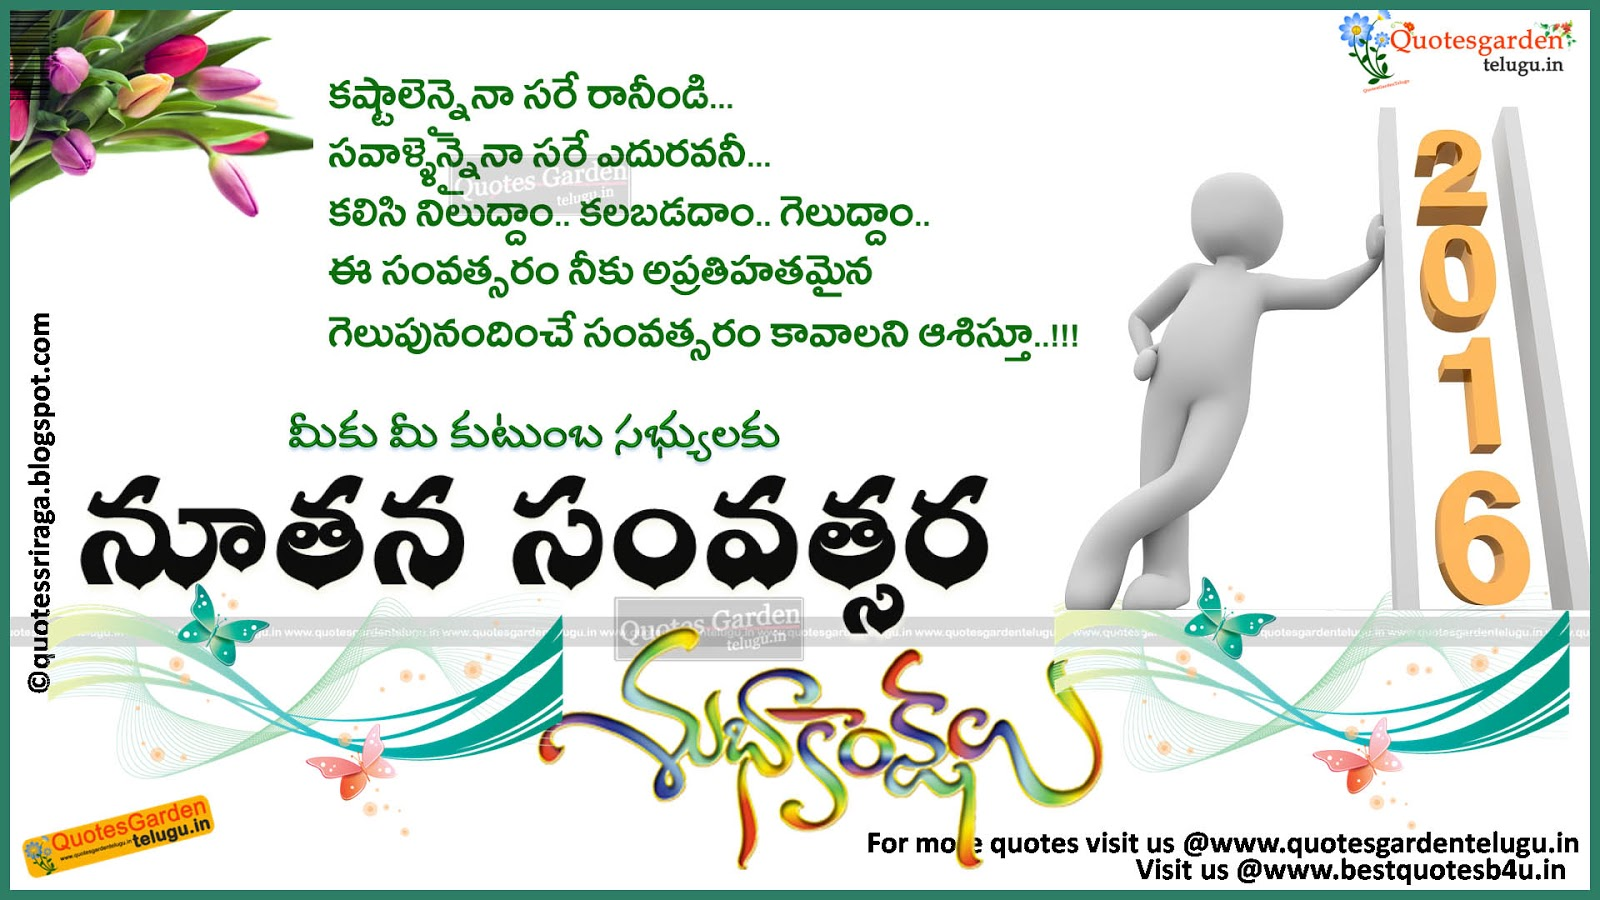 New Year Greetings In Telugu Choice Image - greetings formal letter